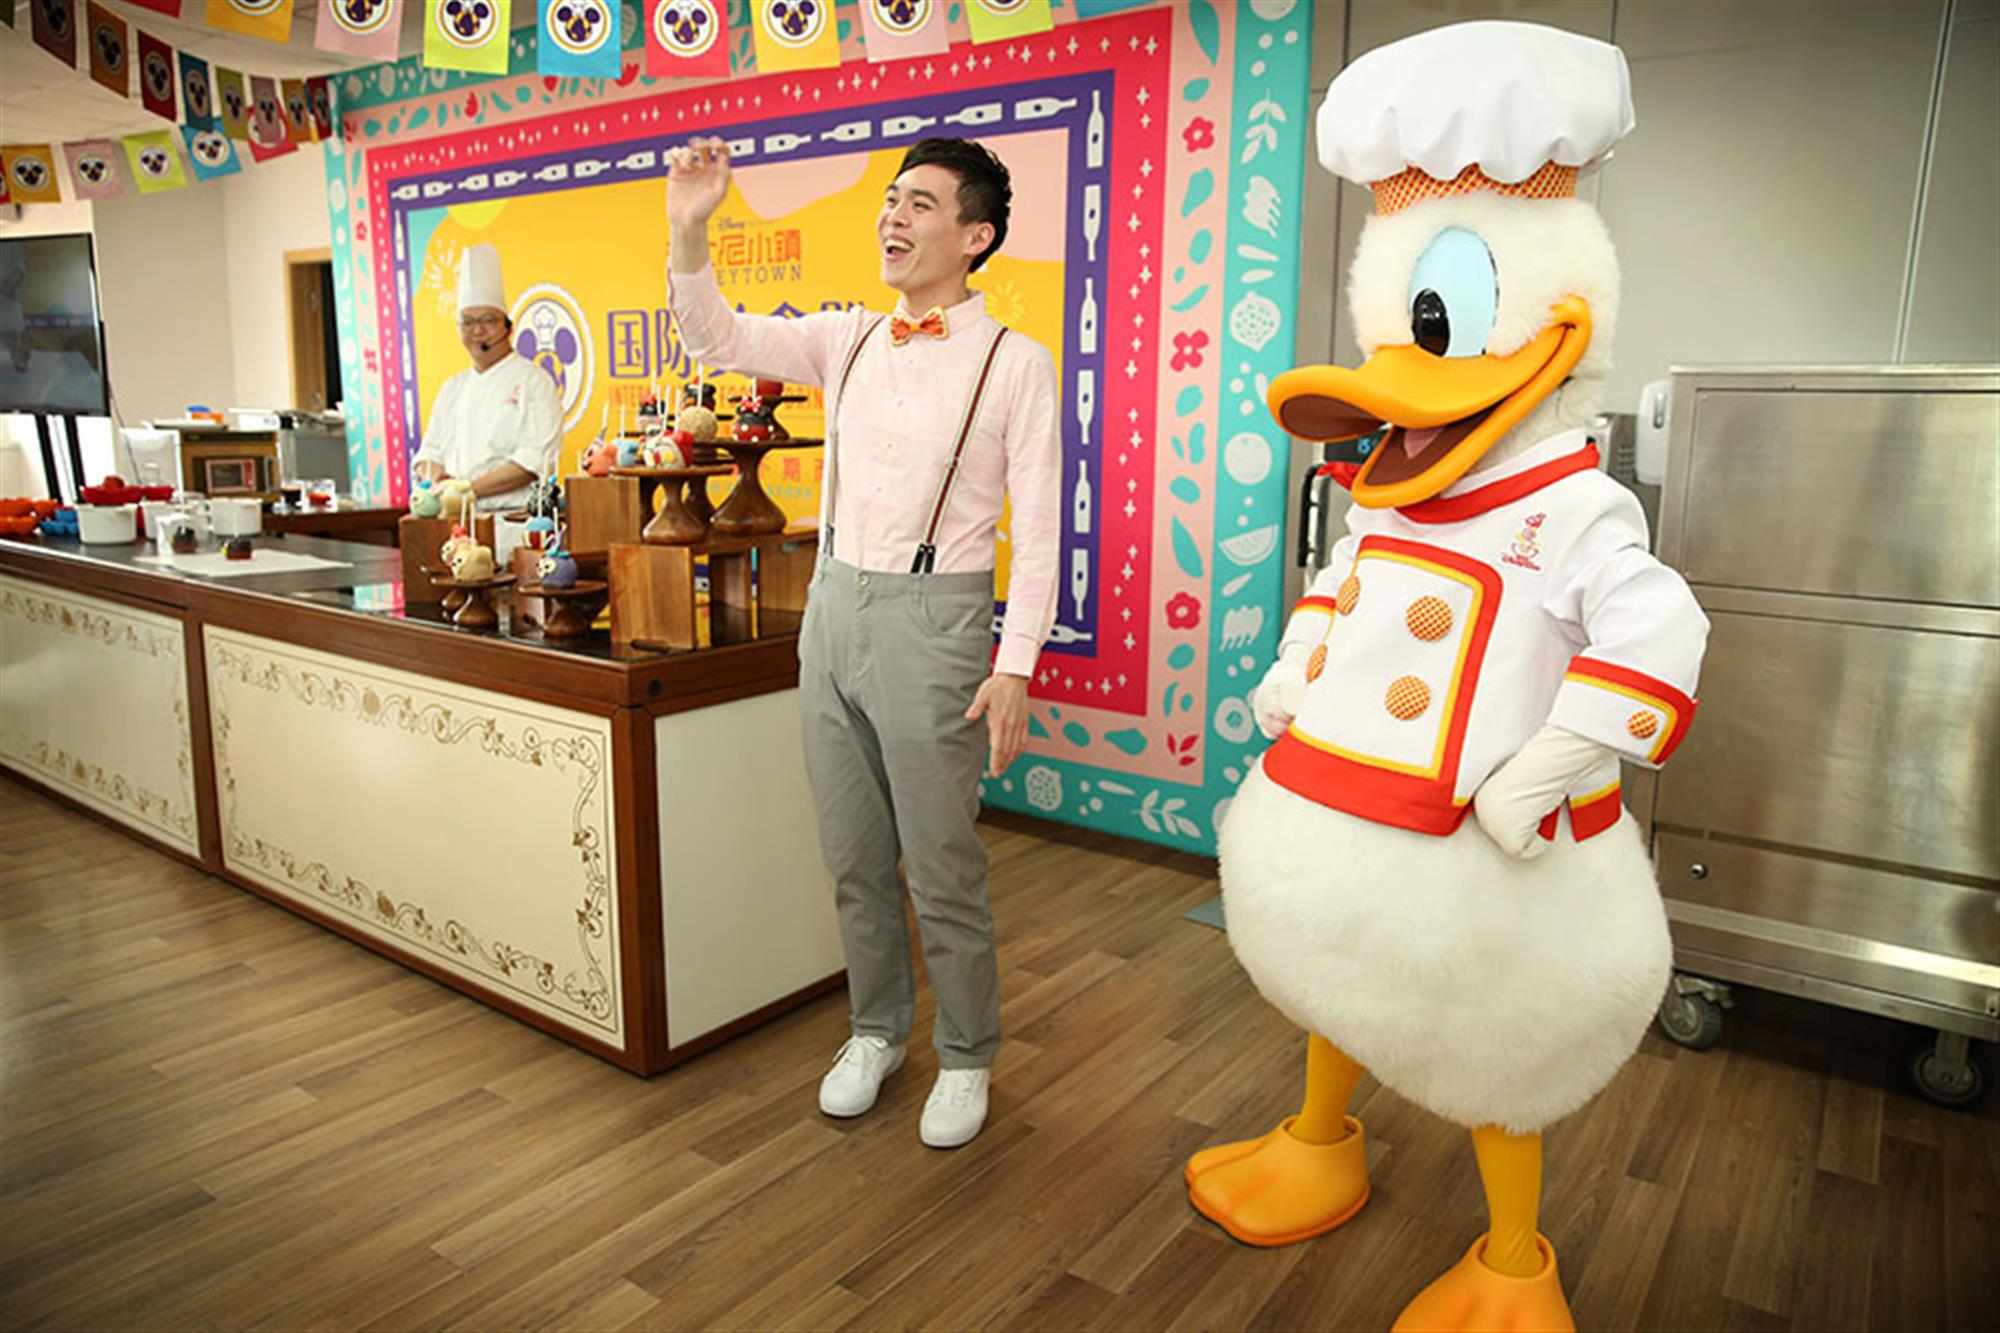 The daily Disney Chef Cooking Show at Disneytown's Lakeshore Lawn